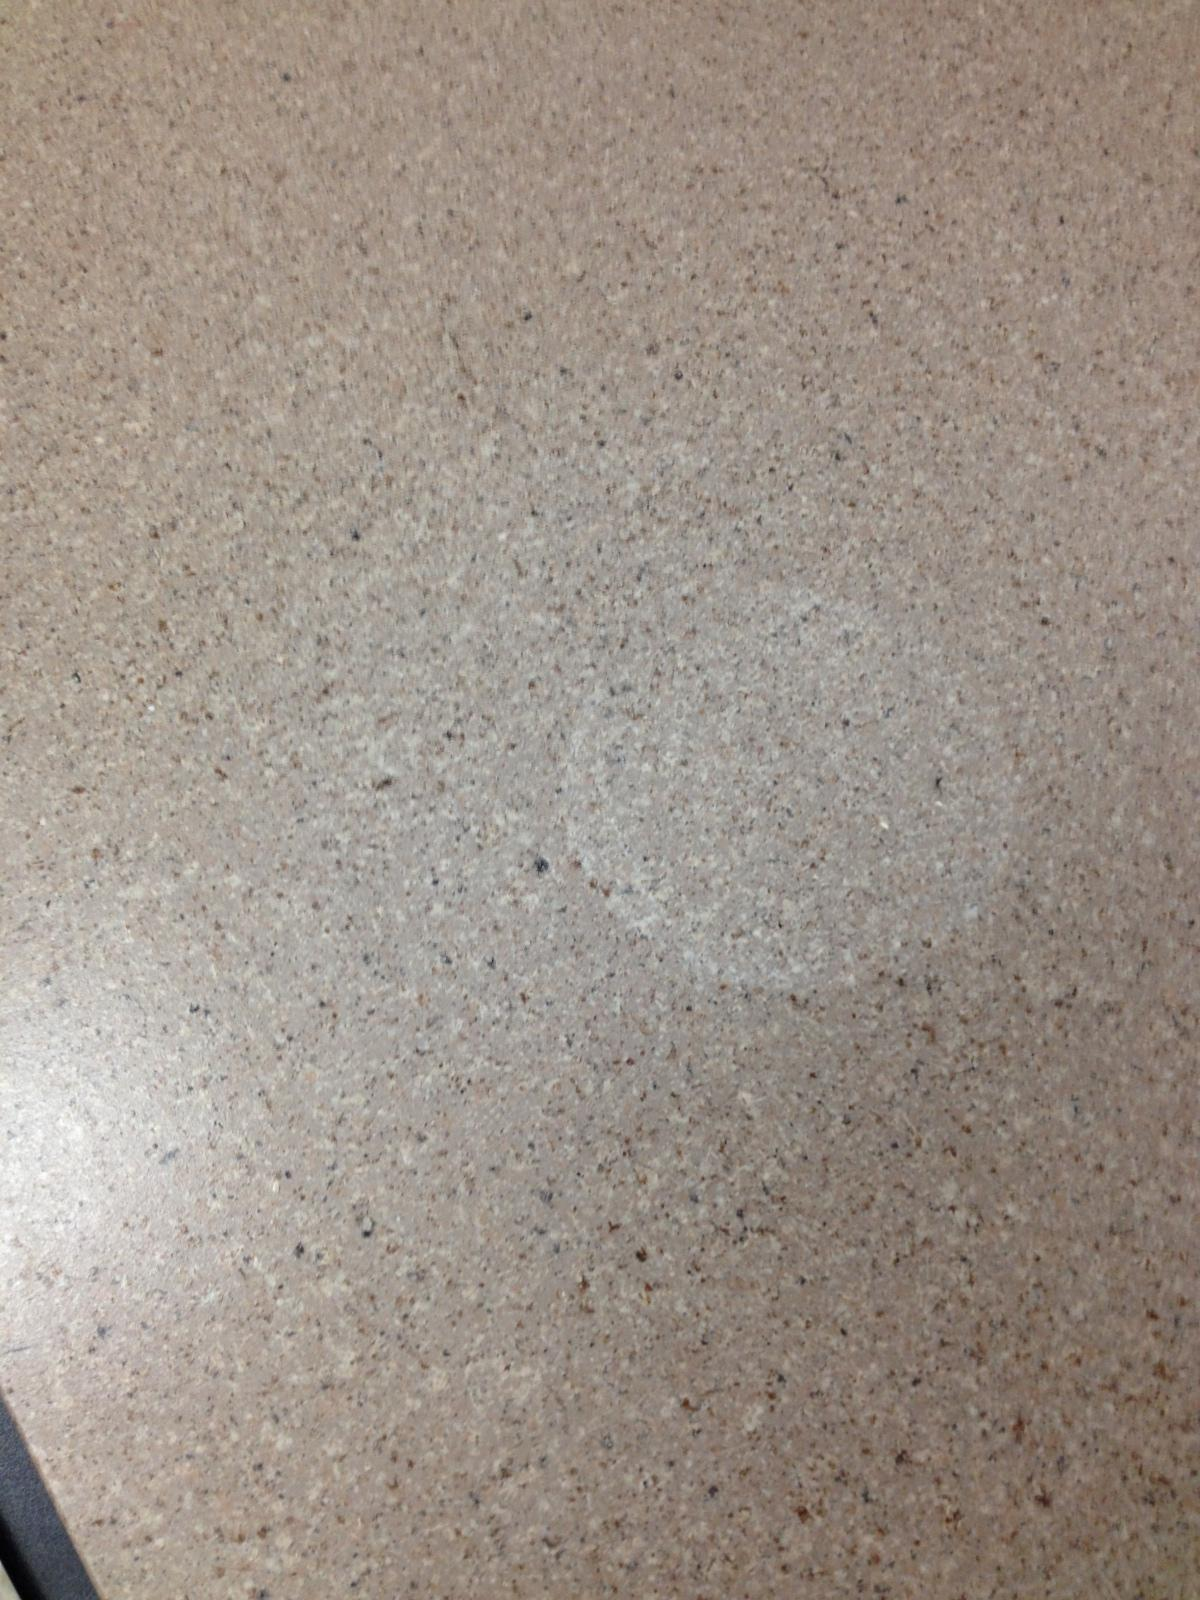 How To Remove Hard Water Stains From Granite Countertops Repair Remove White Stain From Countertop Home